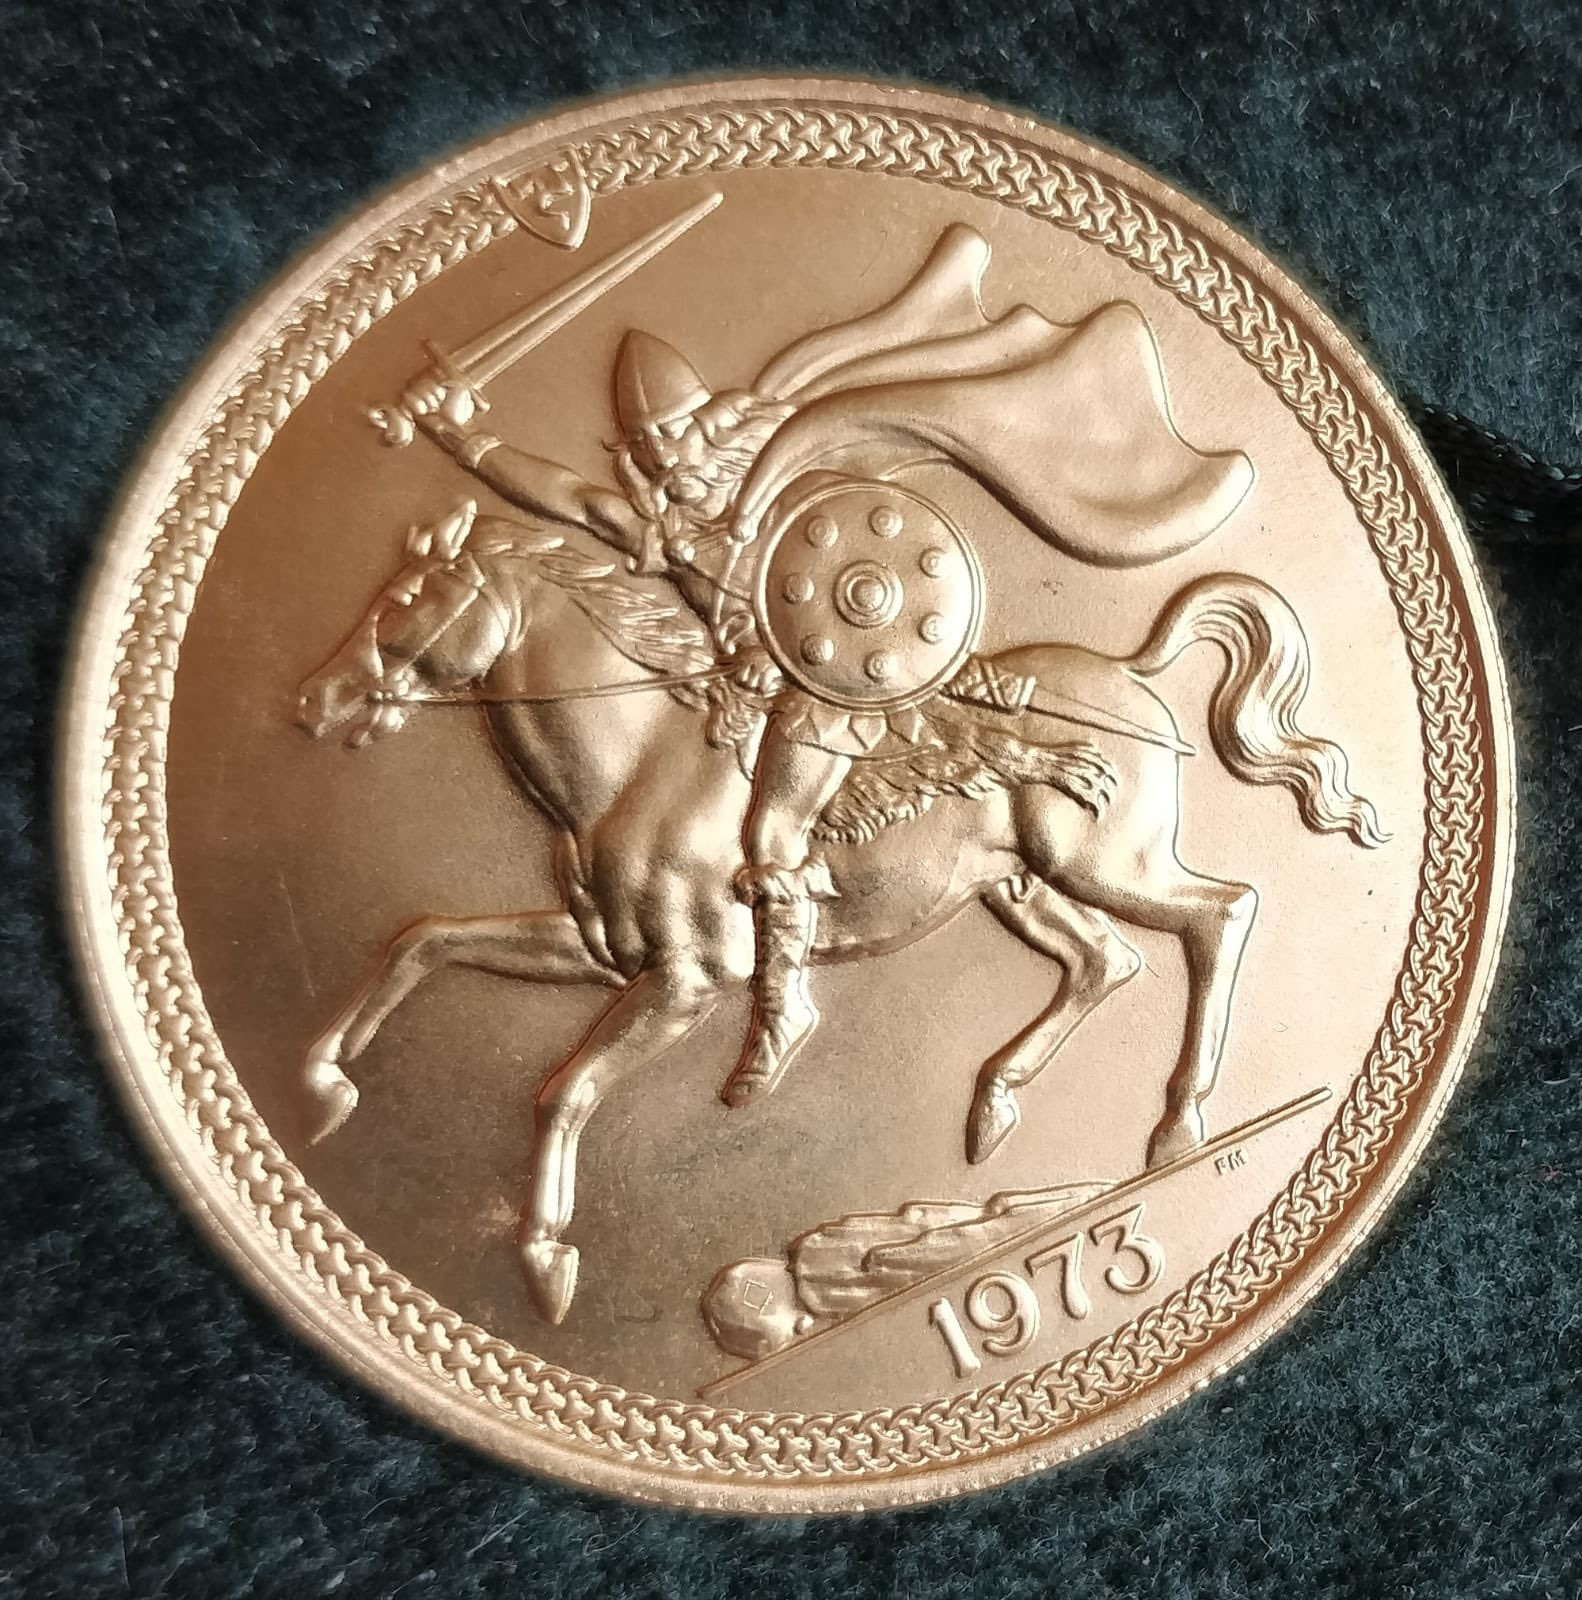 POBJOY MINT ISLE OF MAN 1973 GOLD FOUR COIN SOVEREIGN SET comprising £5 coin, £2 coin, sovereign and - Image 2 of 4